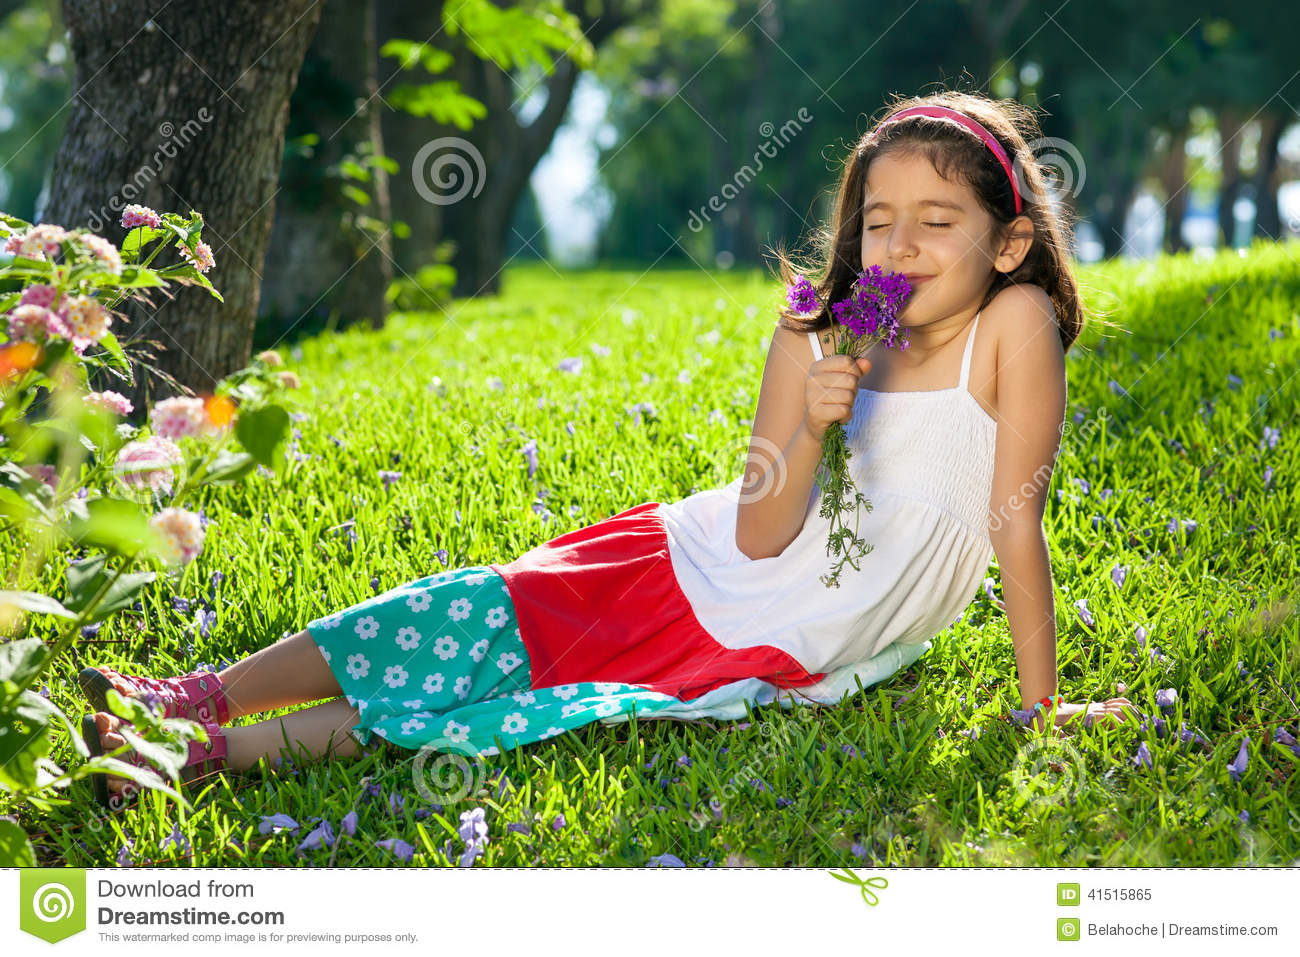 Young Girl Smelling Flowers in Her Hands.